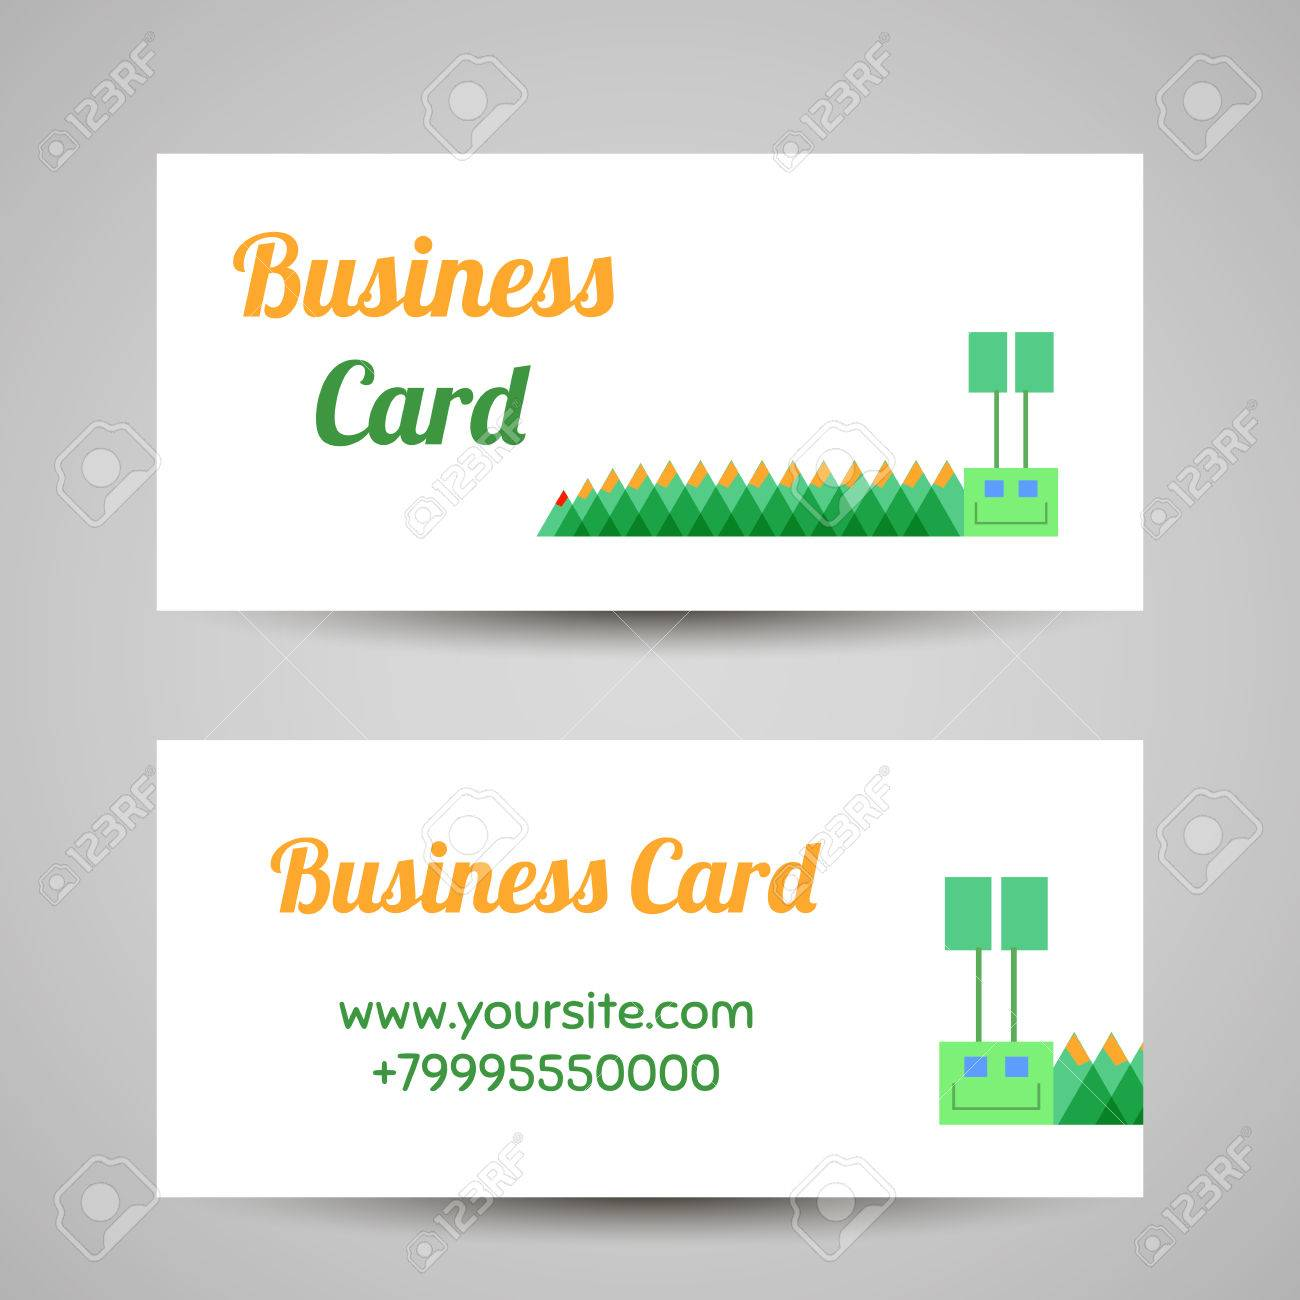 Business card template with funny caterpillar vector illustration business card template with funny caterpillar vector illustration stock vector 42700802 cheaphphosting Images